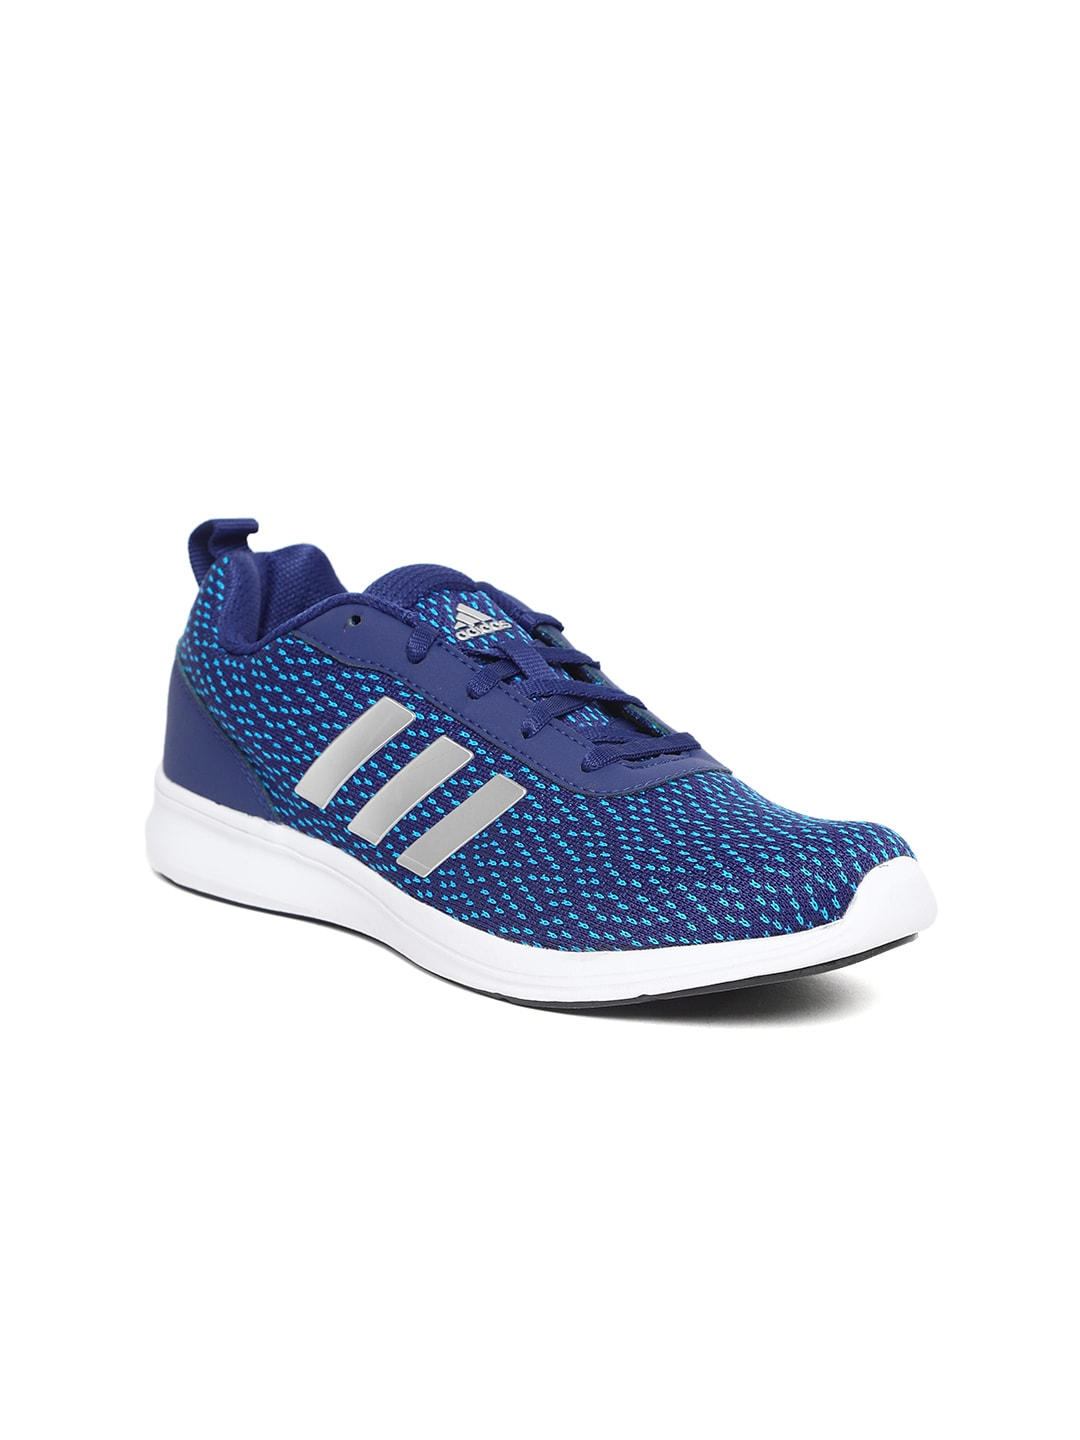 6a9e3a1f343 Sports Shoes for Women - Buy Women Sports Shoes Online